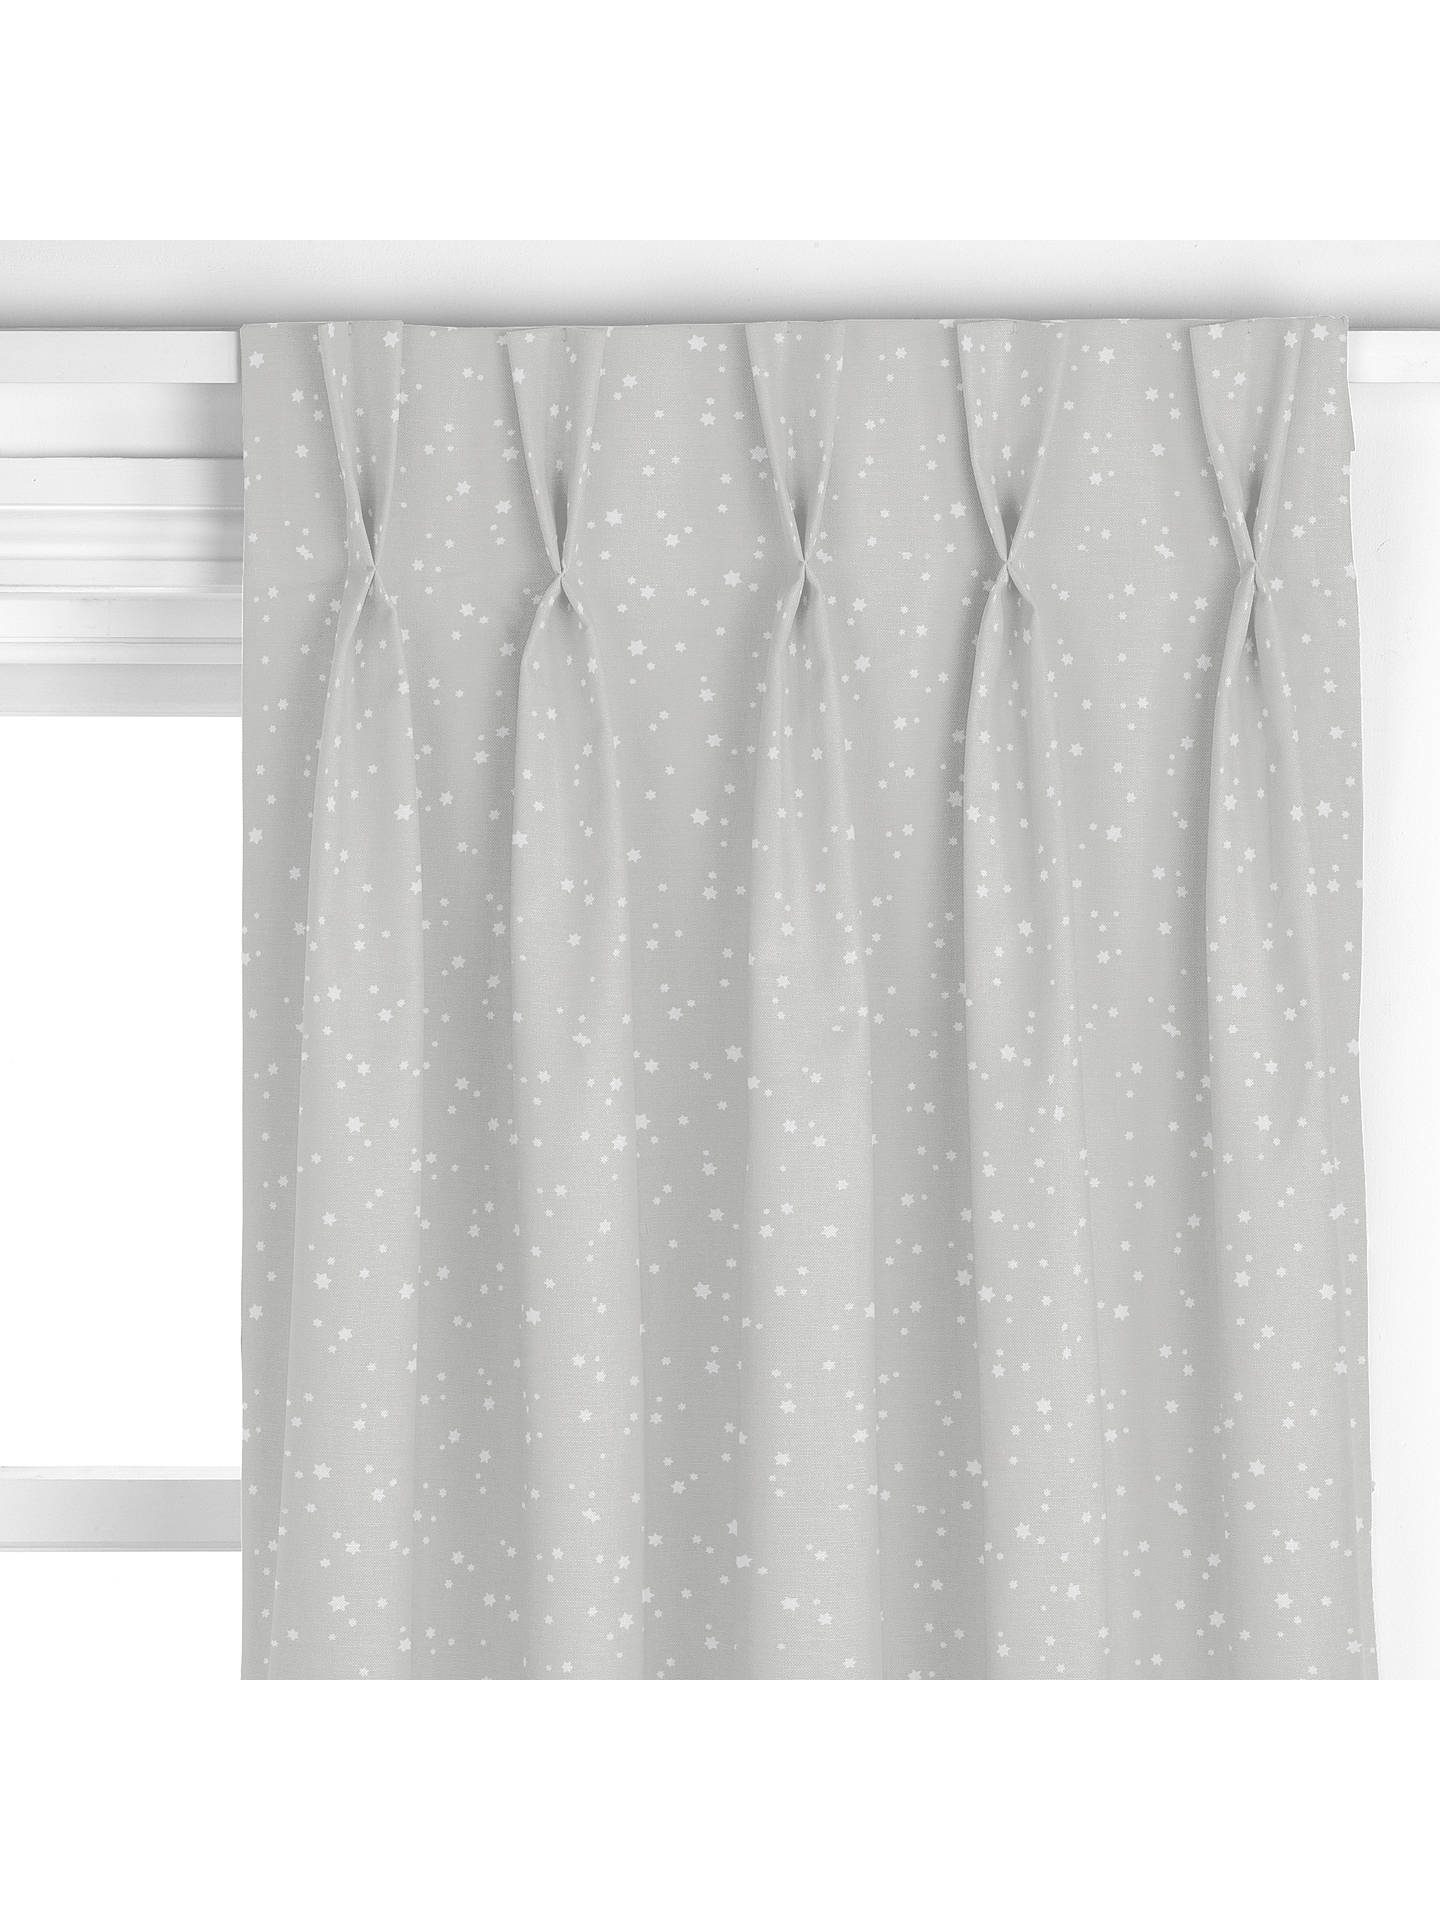 Thermal Curtains John Lewis Abahcailling Co